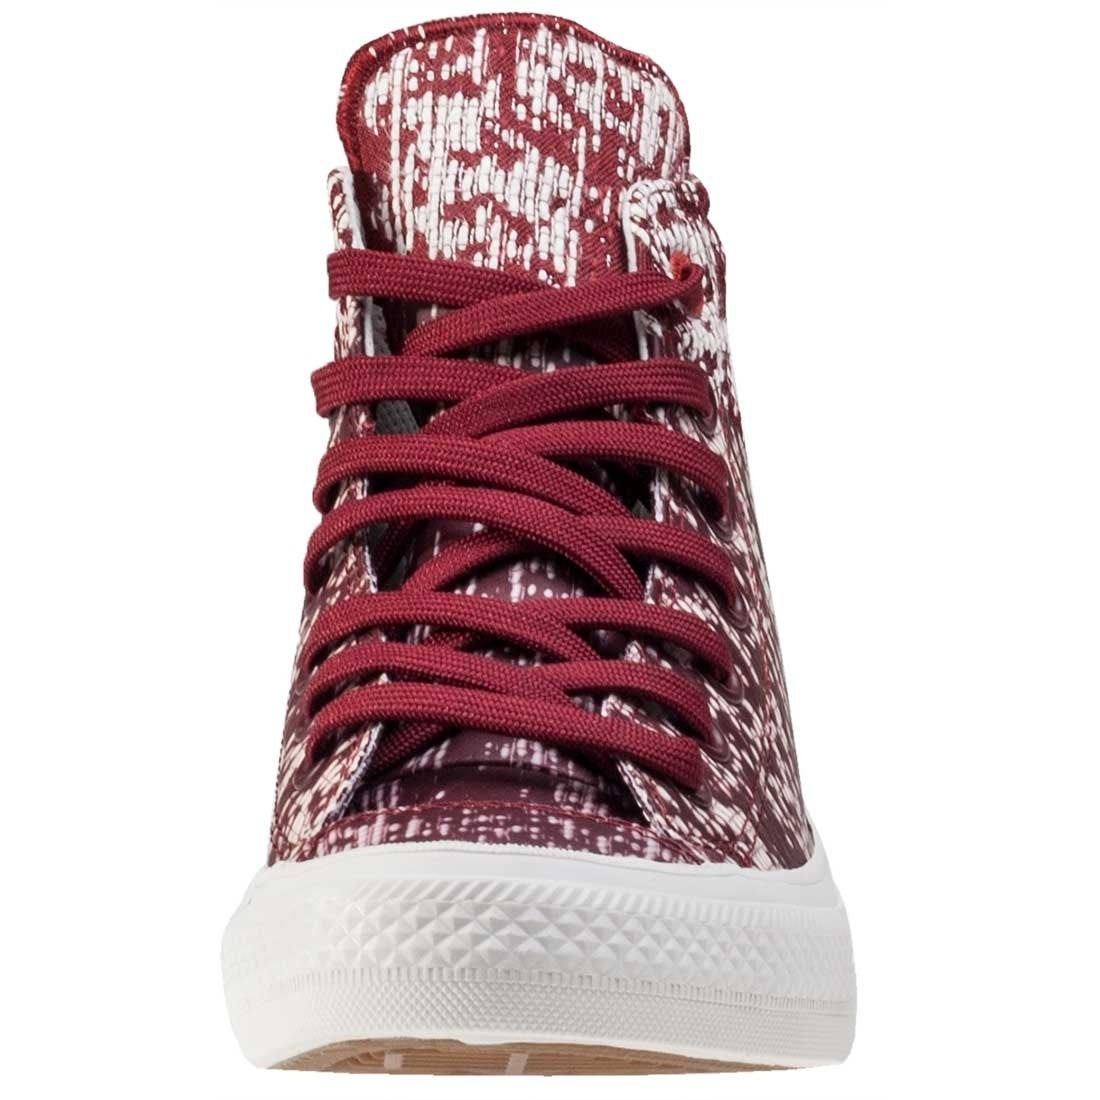 2fcd233d8139 Shop Converse Mens CT II Hi Hight Top Lace Up Fashion Sneakers - Free  Shipping Today - Overstock - 25893548